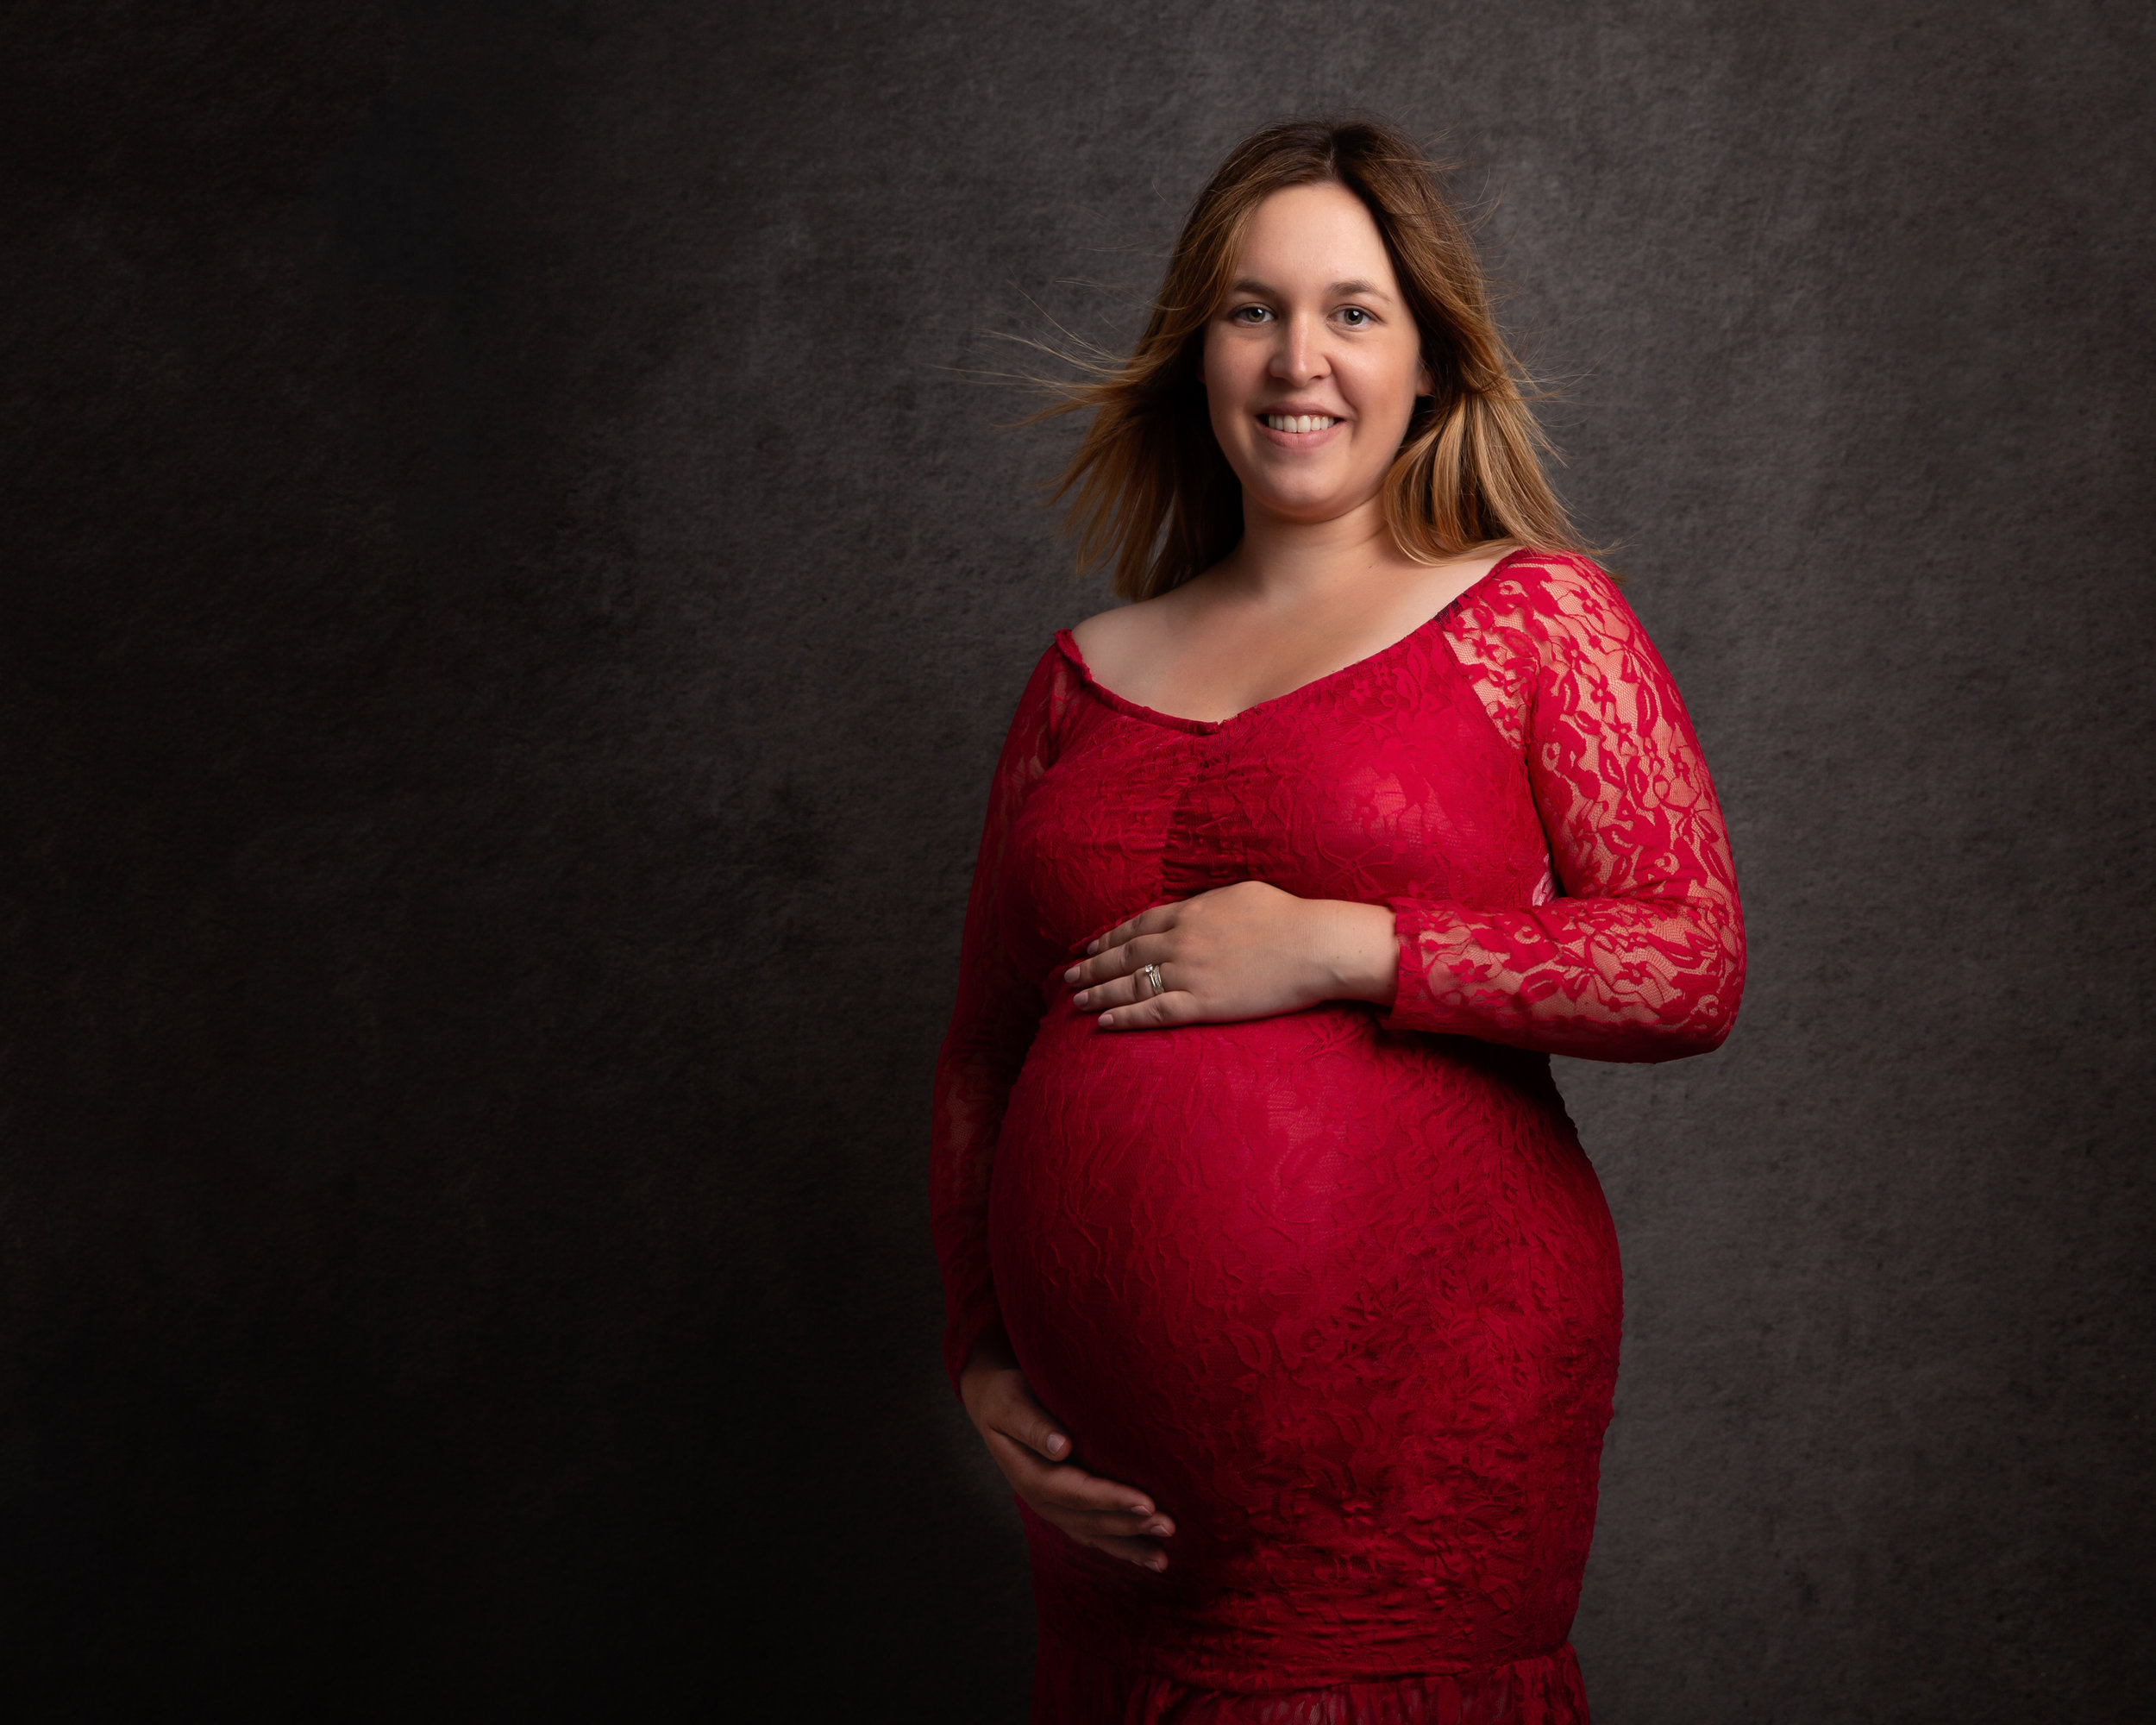 award-winning-maternity-portrait-red-dress-london-photographer.jpg